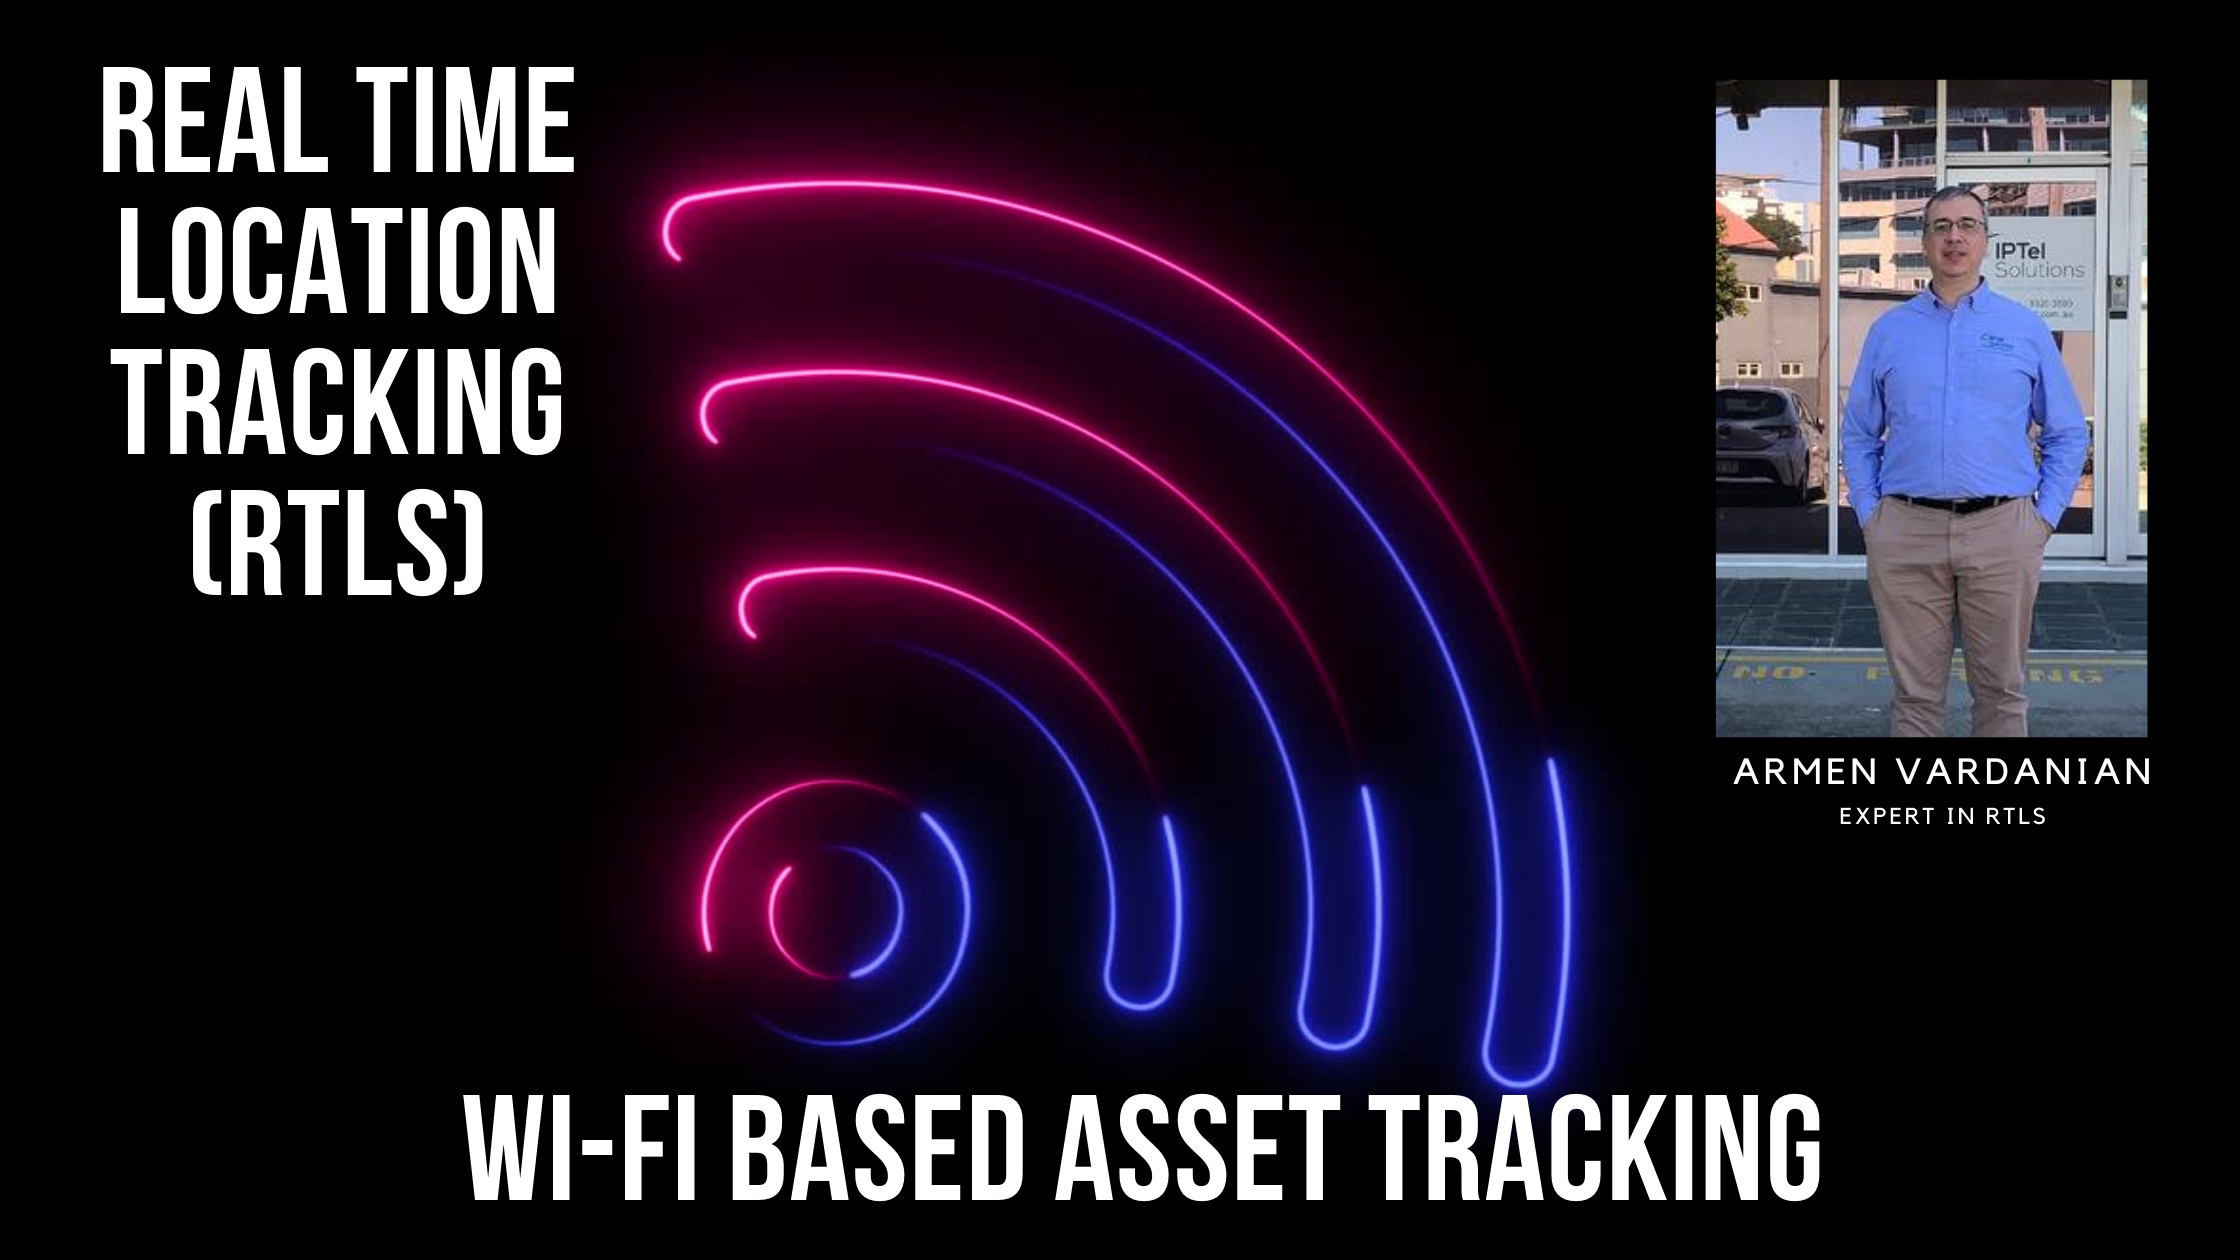 Real Time Location Tracking (RTLS)